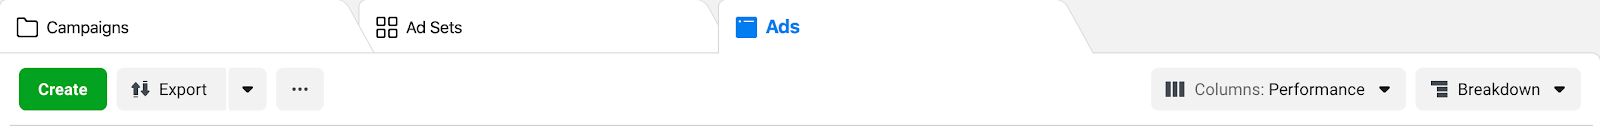 The Ad Creation Process in Facebook Ads Manager